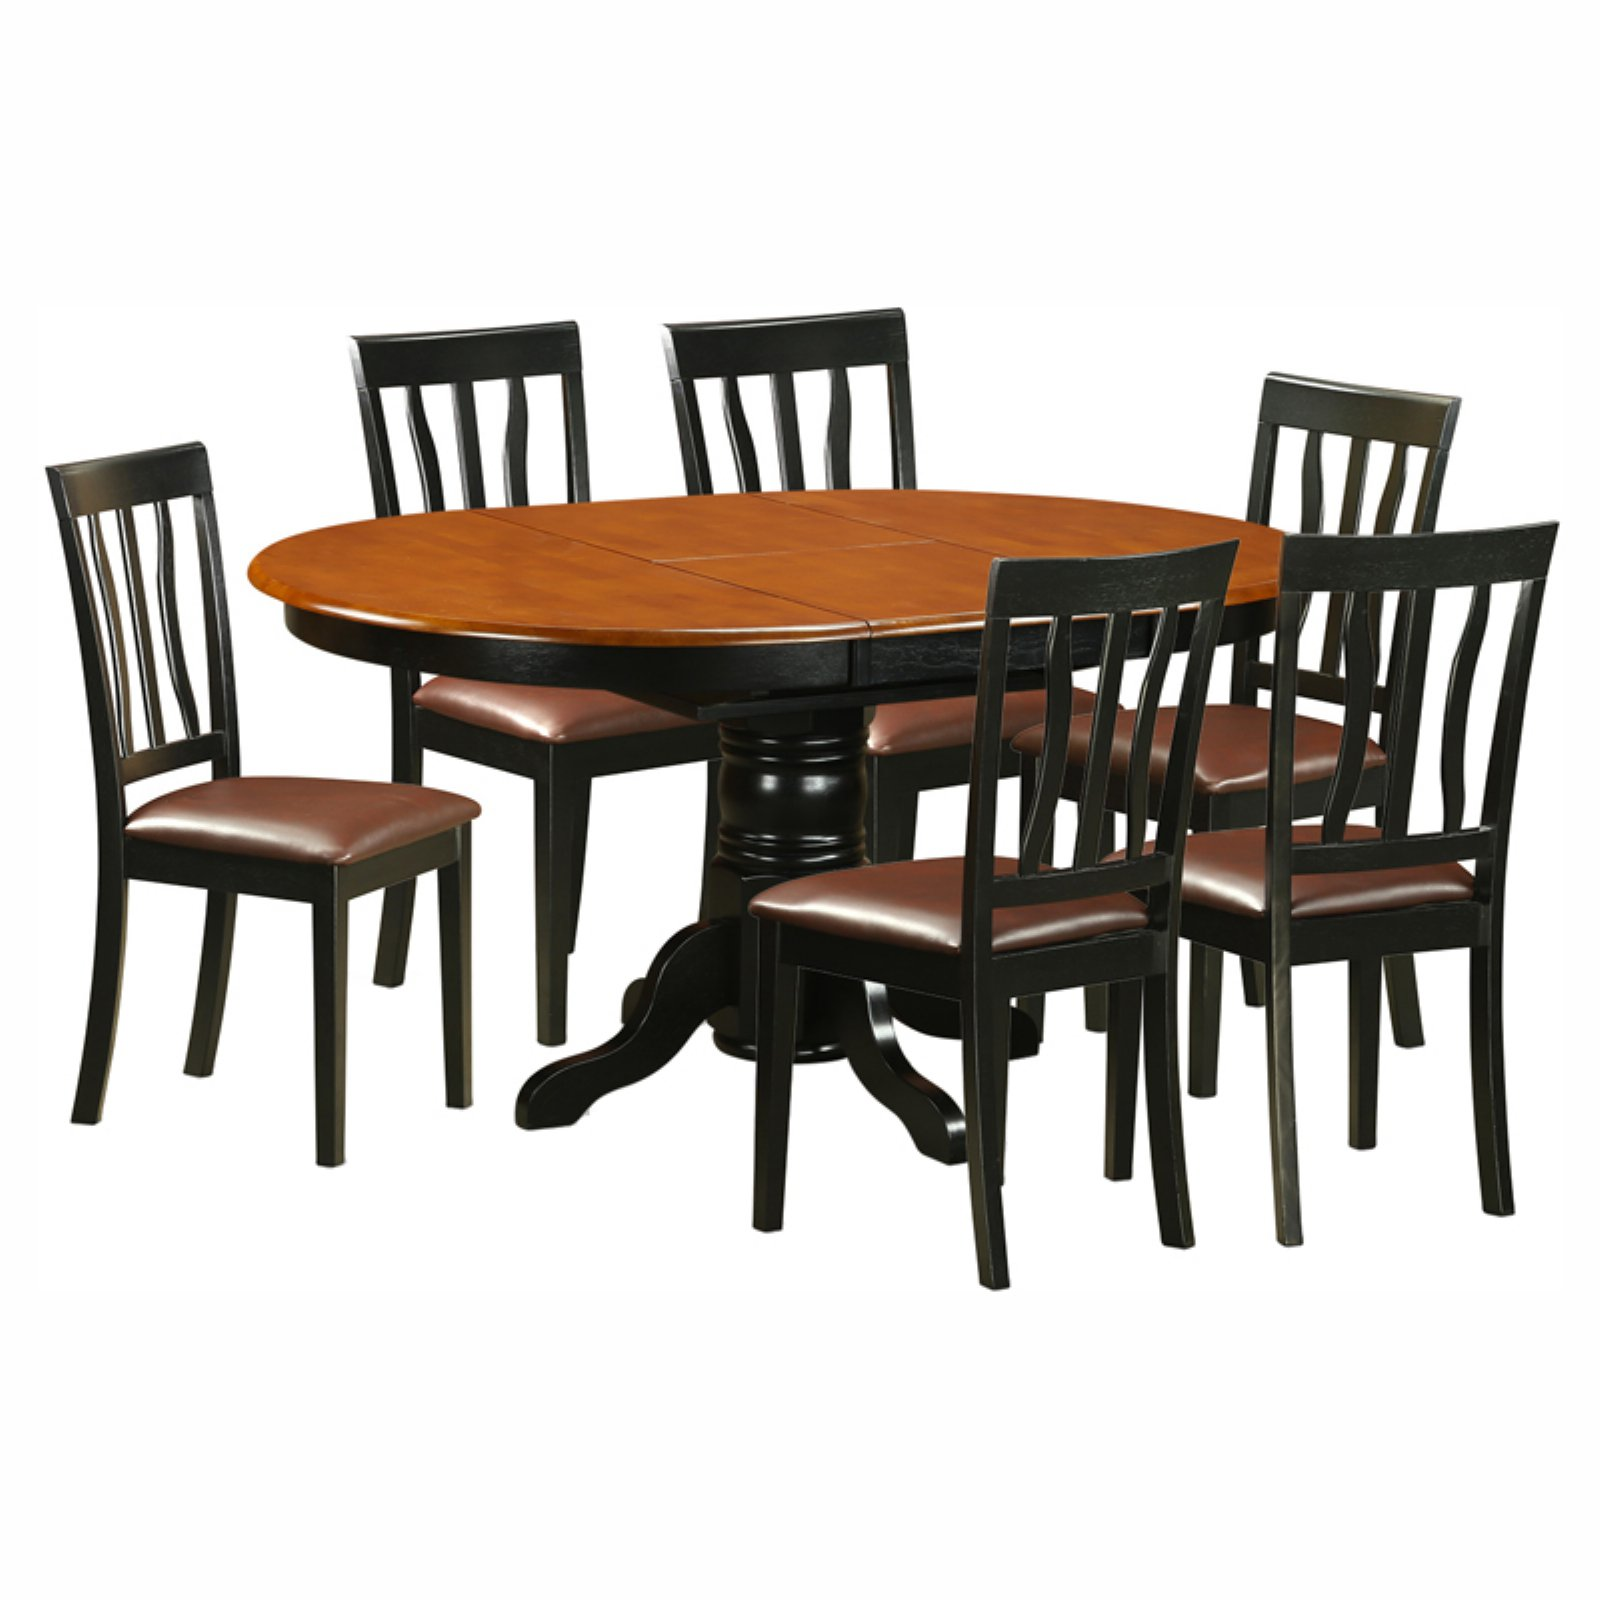 East West Furniture Avon 7 Piece Pedestal Oval Dining Table Set with Antique Microfiber Seat Chairs